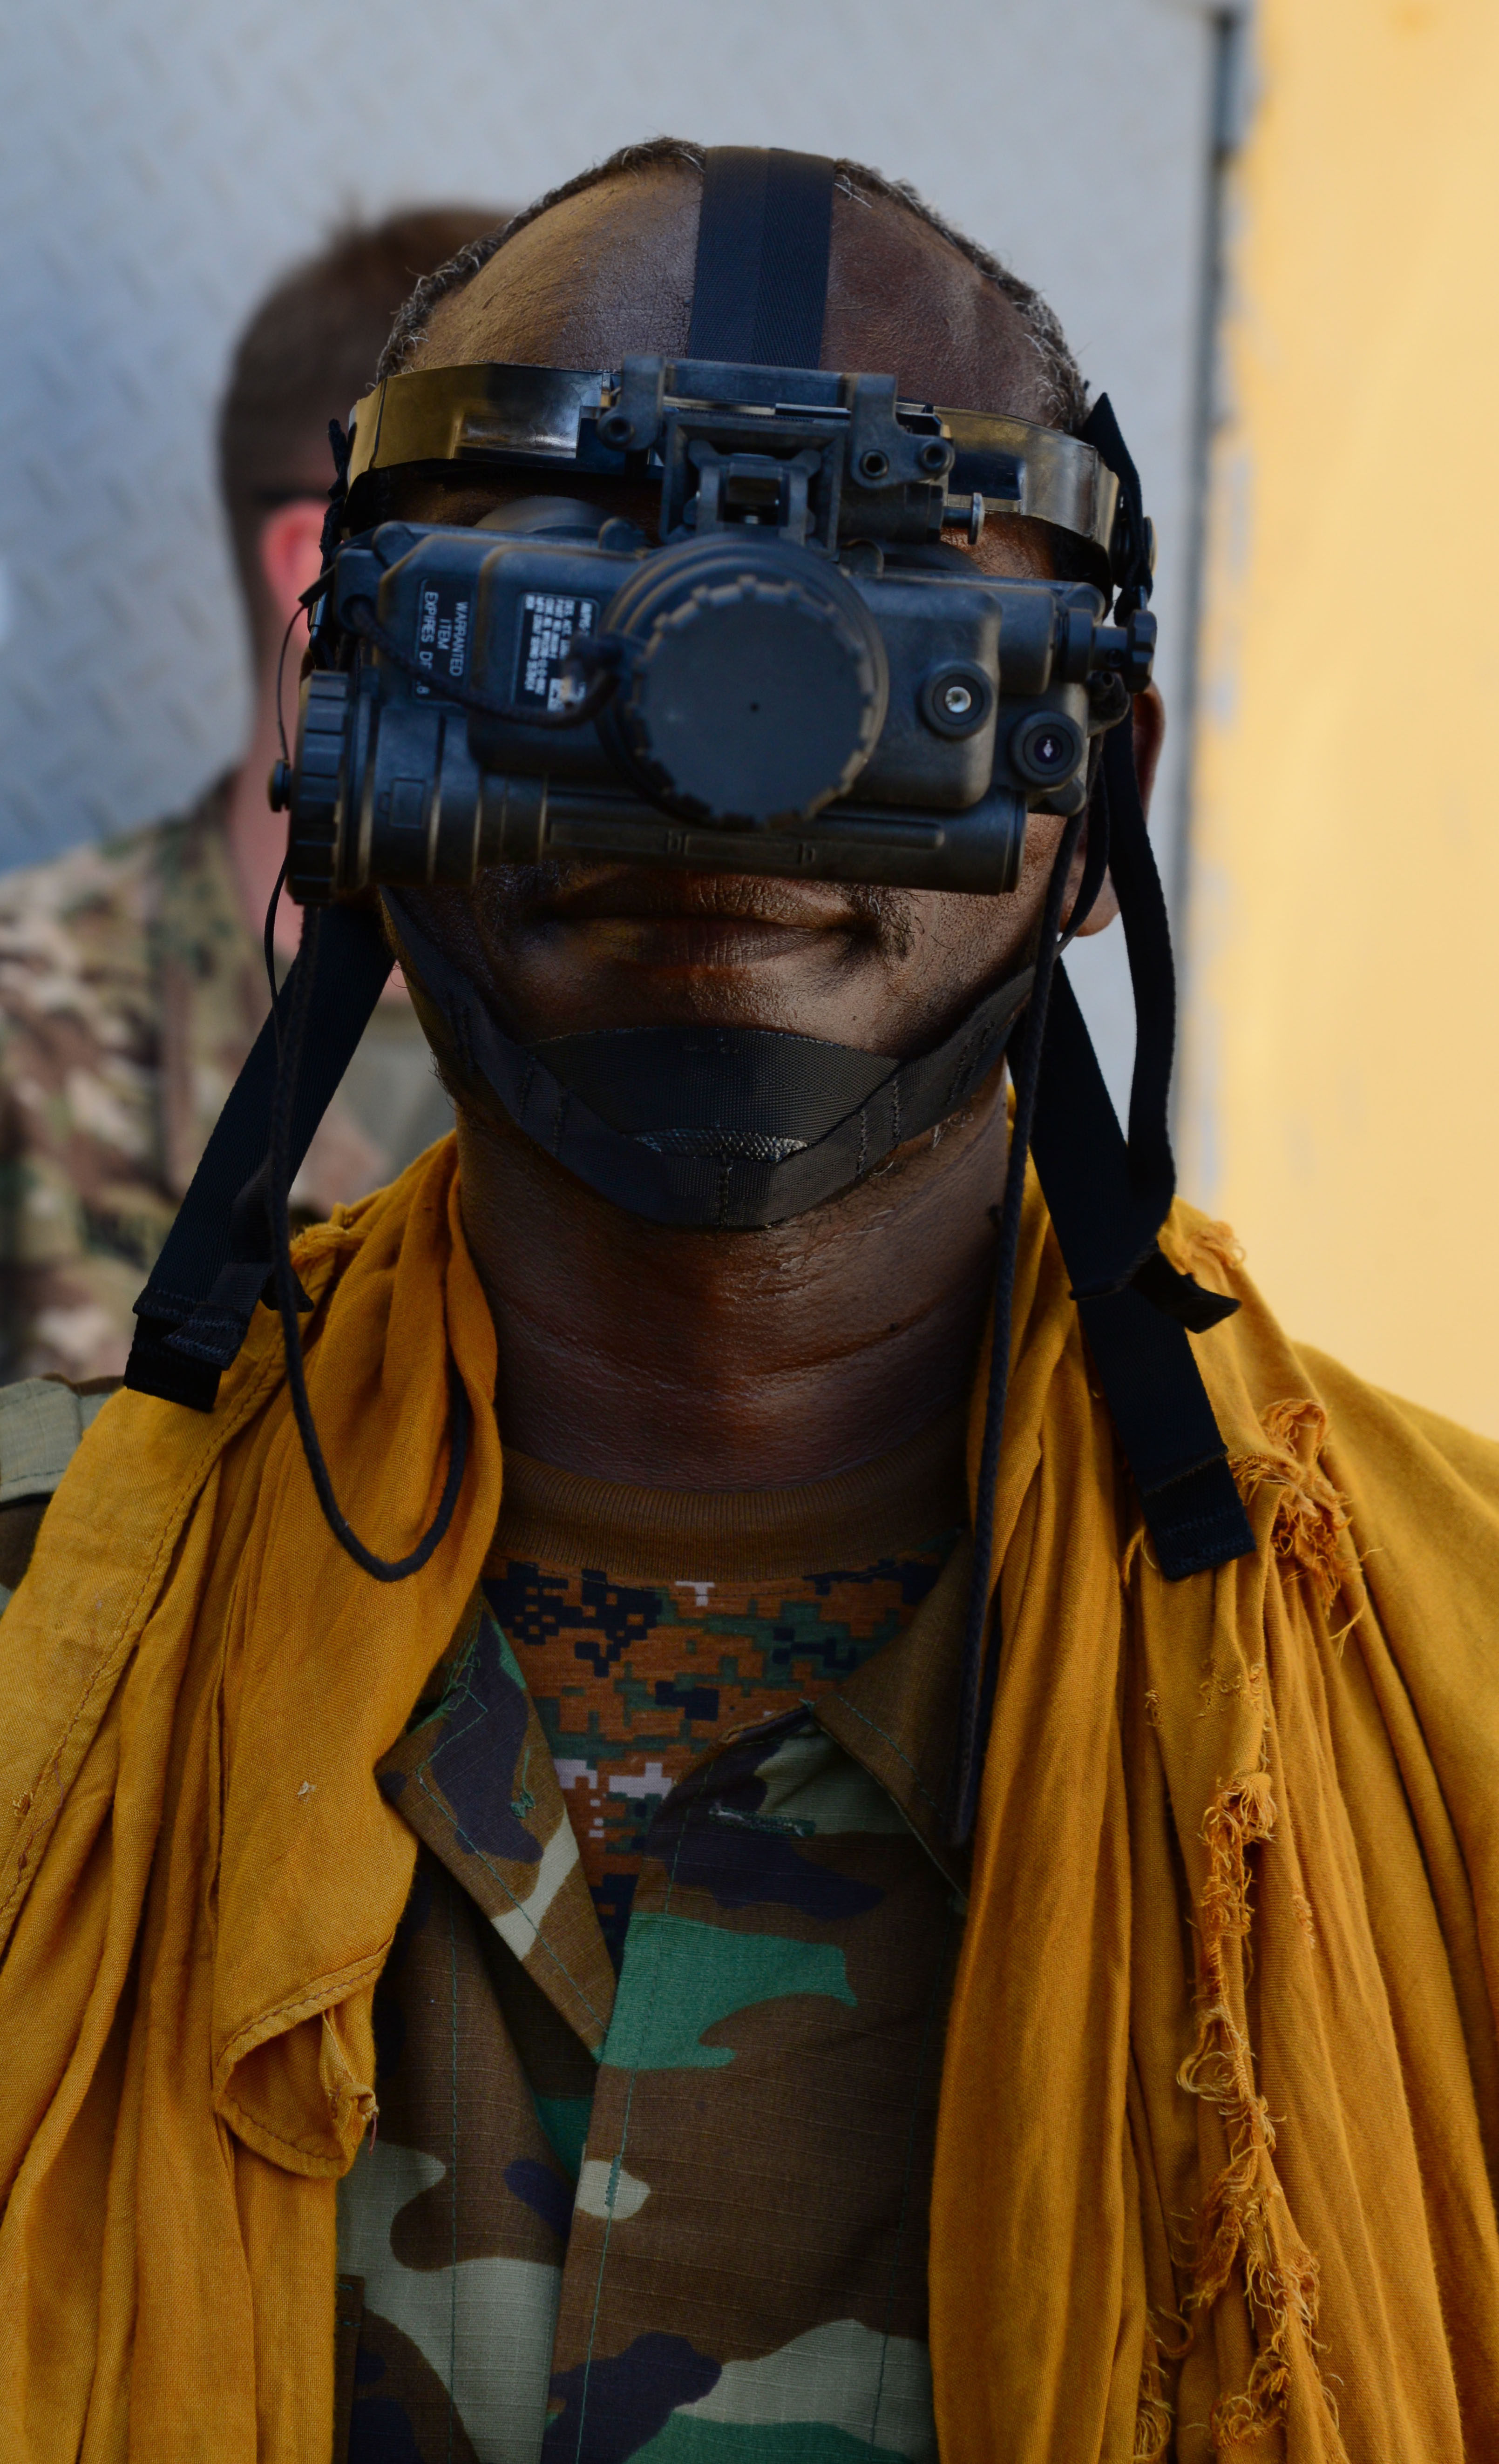 A Djiboutian soldier poses for a photo before taking part in a night vision goggles training exercise in Djibouti City, Oct. 10, 2016. Soldiers learned the components of an NVG kit, accountability, proper wear, usage and tactics such as signaling teammates during the four-day course.  (U.S. Air Force photo by Staff Sgt. Benjamin Raughton)